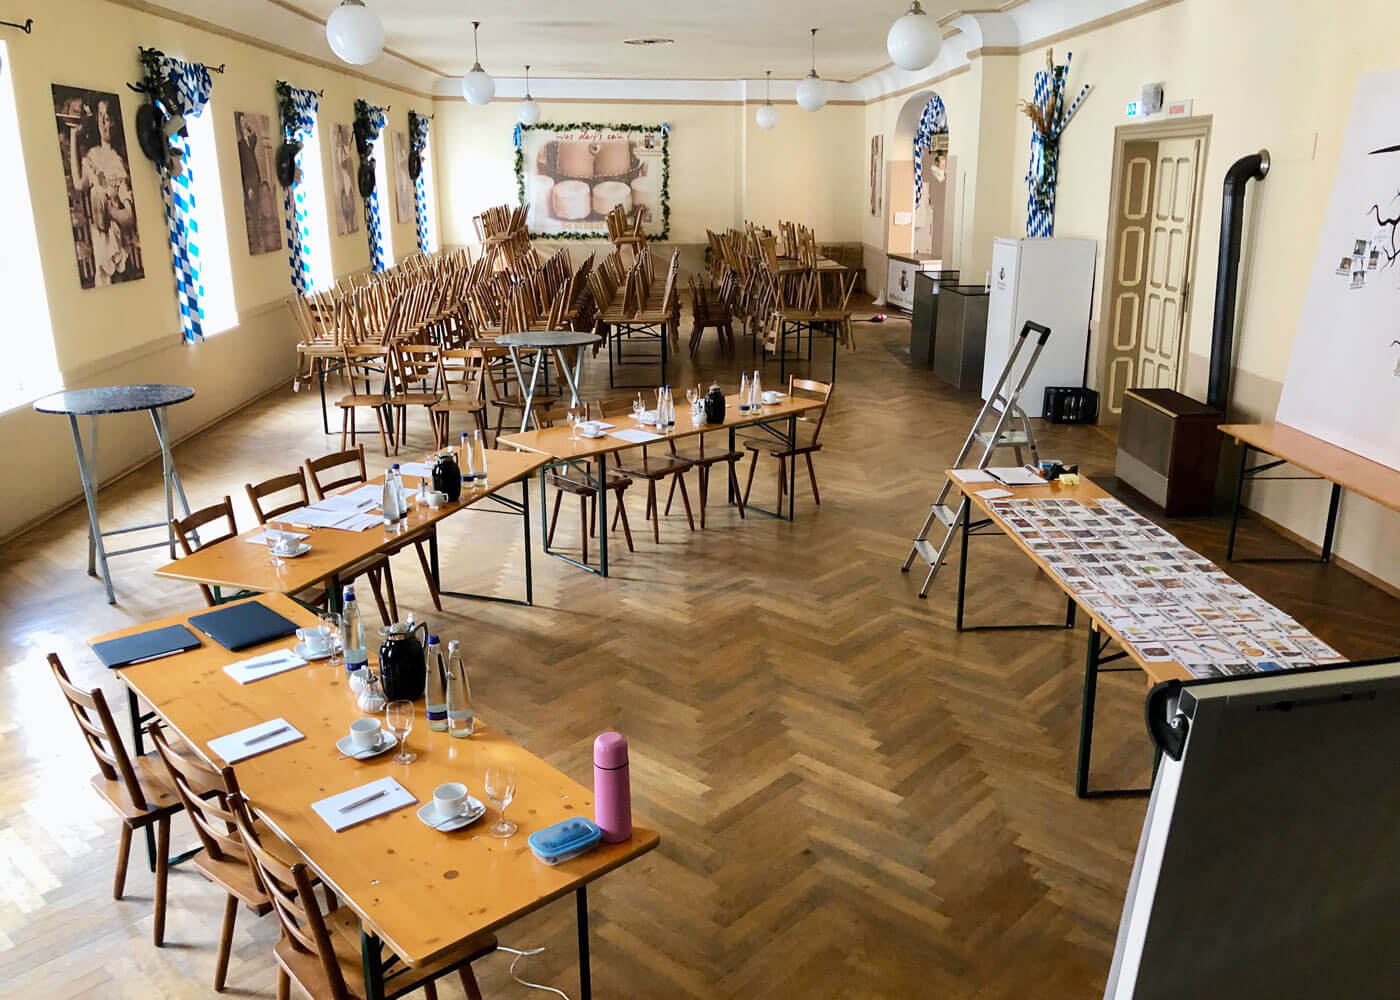 Brauerei Marketing Workshop Traunstein